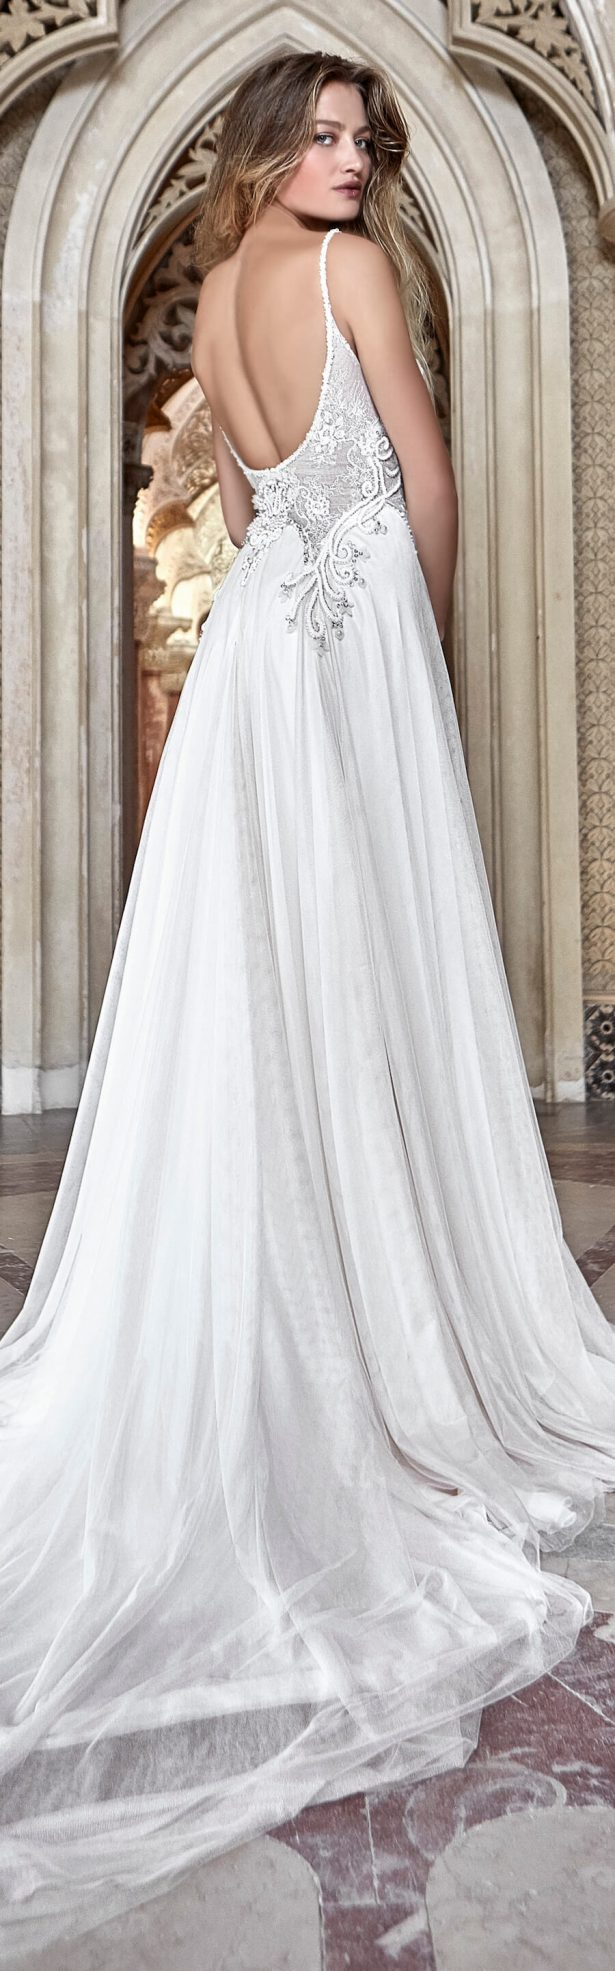 Solo Merav 2017 Wedding Dress Collection